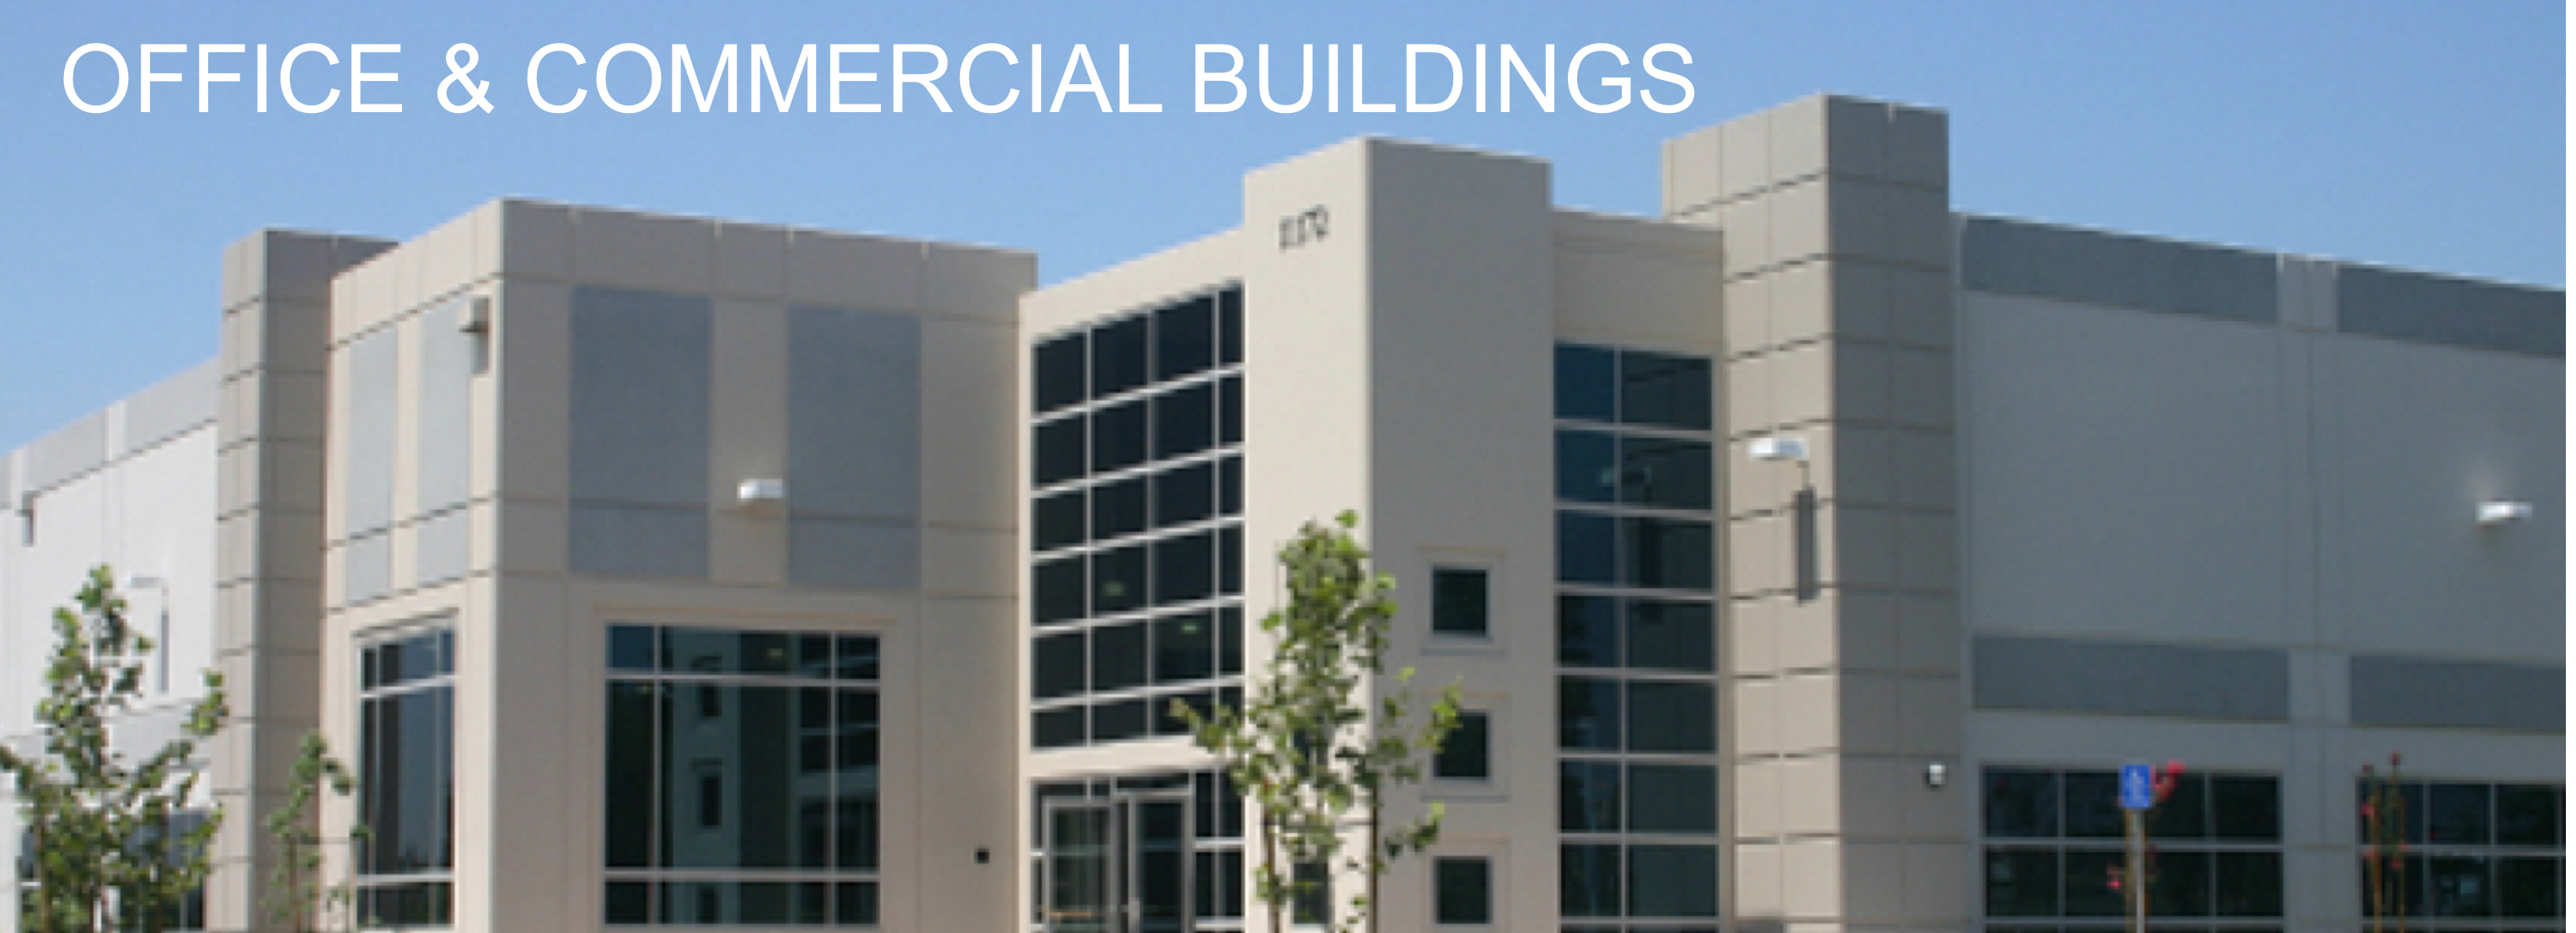 Office & Commercial Buildings